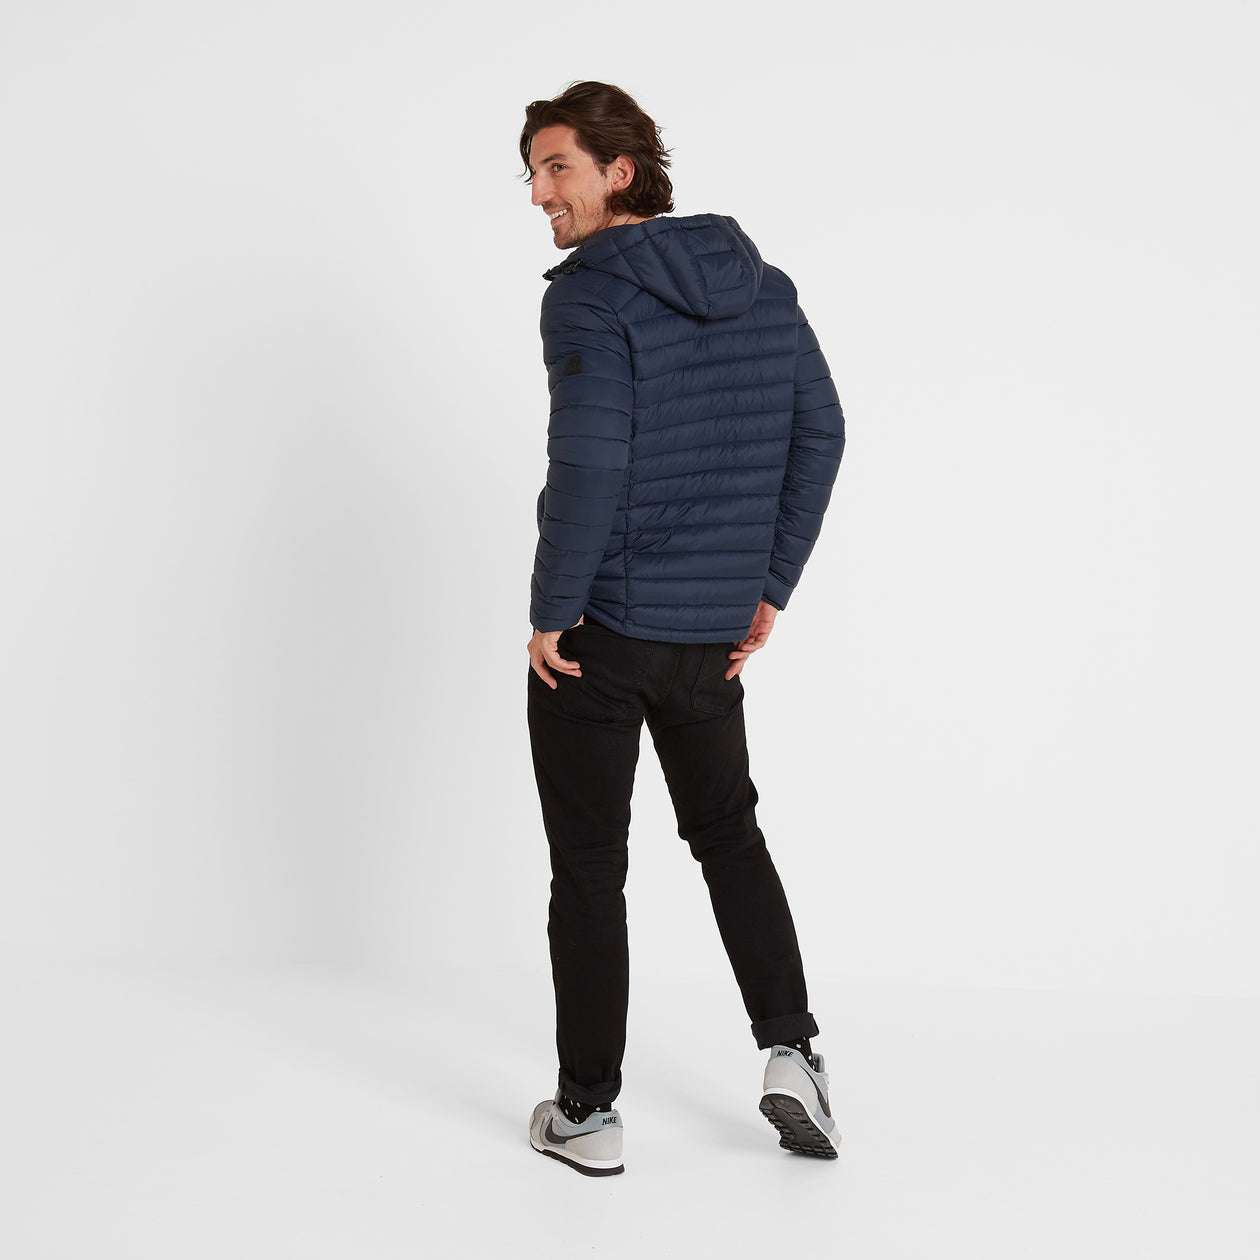 Base Mens Hooded Down Jacket - Dark Indigo image 4